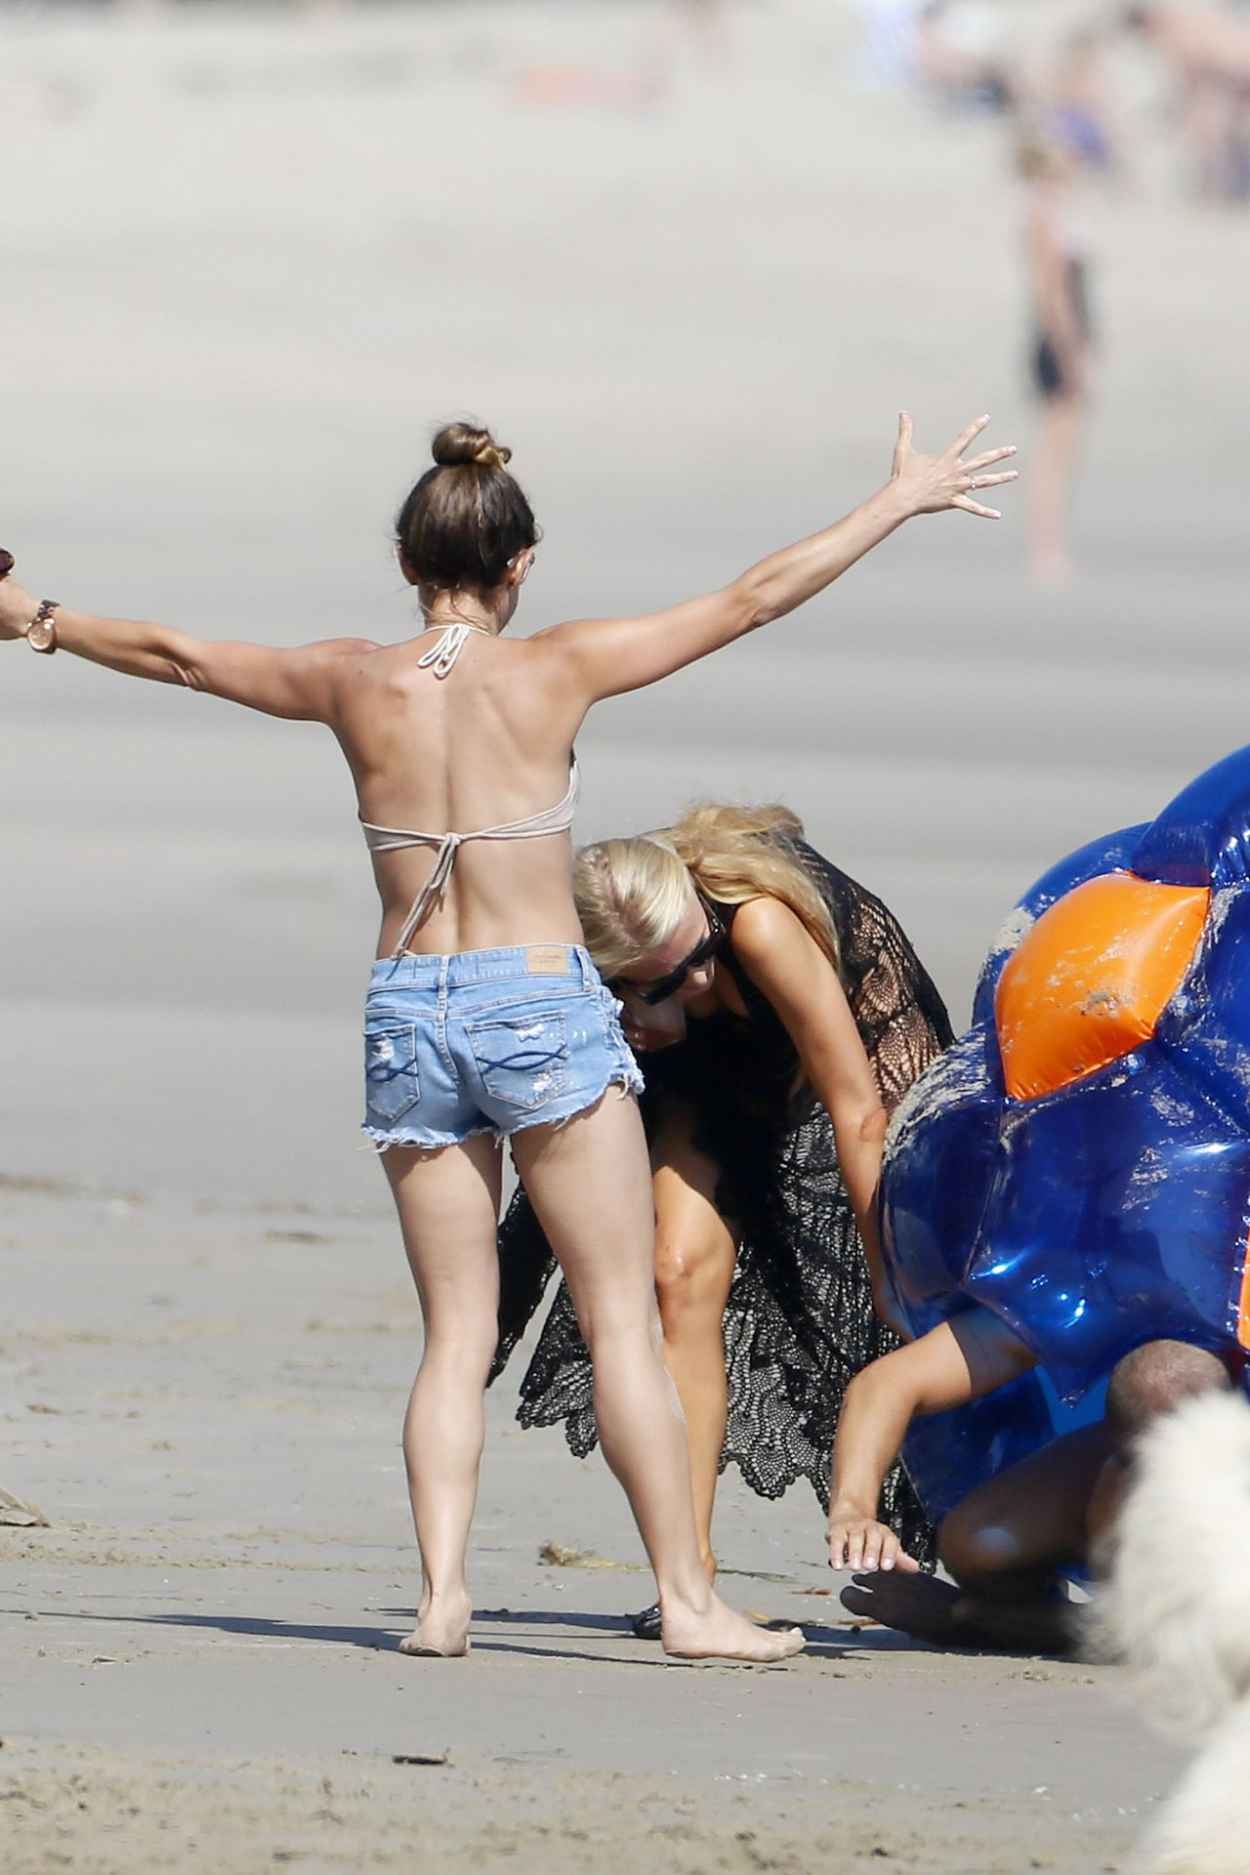 Paris Hilton in a Bikini on the Beach in Malibu - July 2015-4